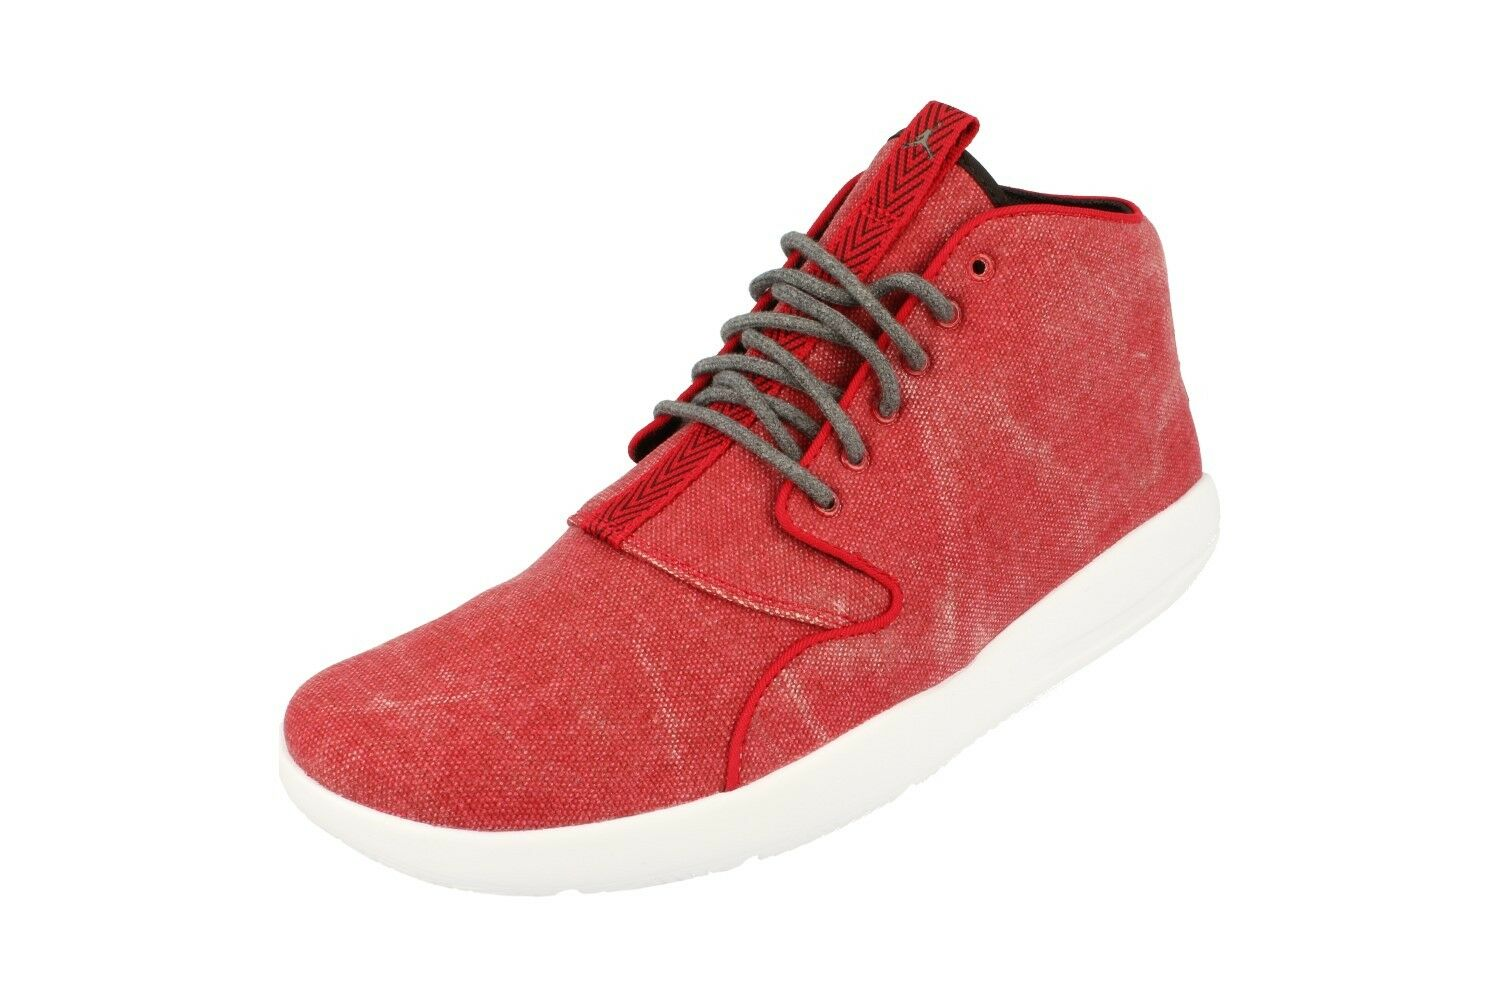 Nike air jordan eclipse trainer - chukka, herren - trainer eclipse 881453 Turnschuhe, schuhe. 175770